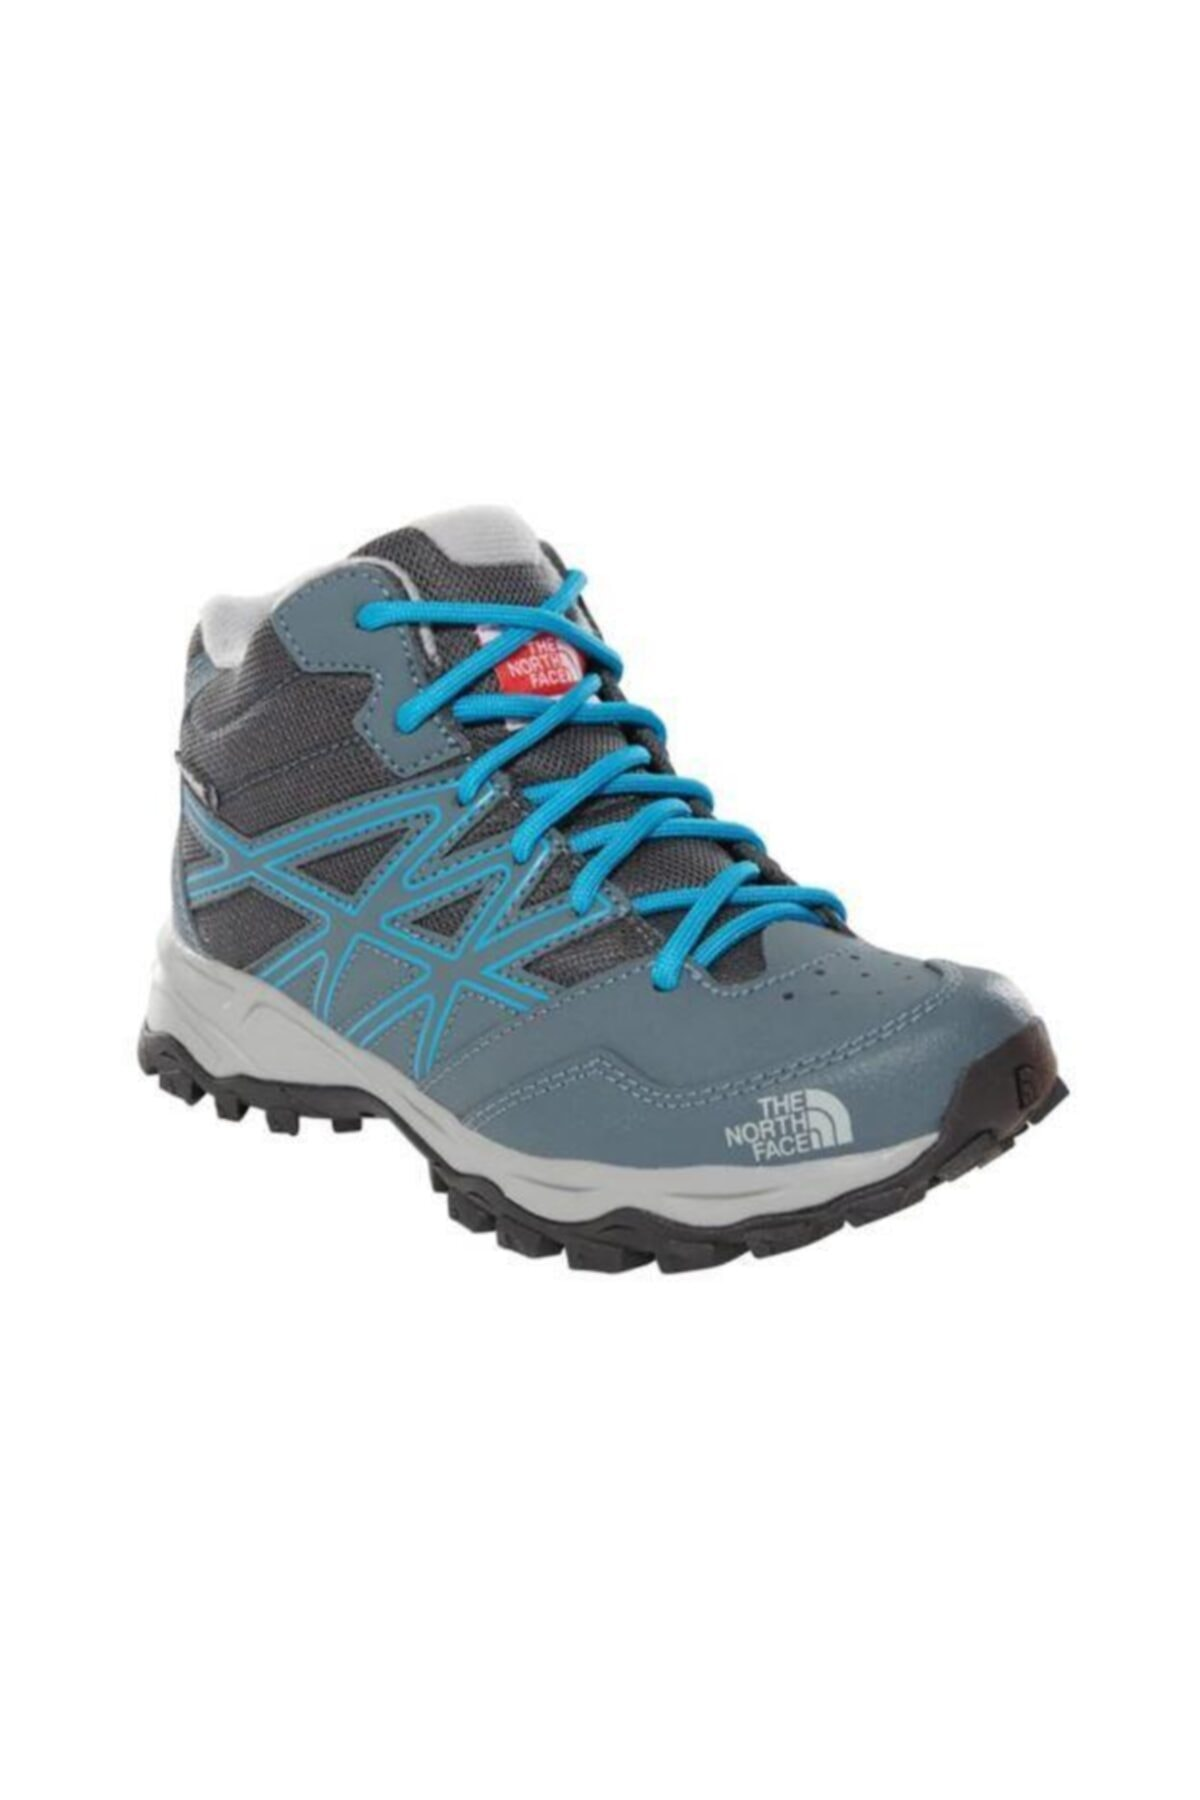 THE NORTH FACE Hedgehog Hiker Mid Wp Çocuk Bot 1